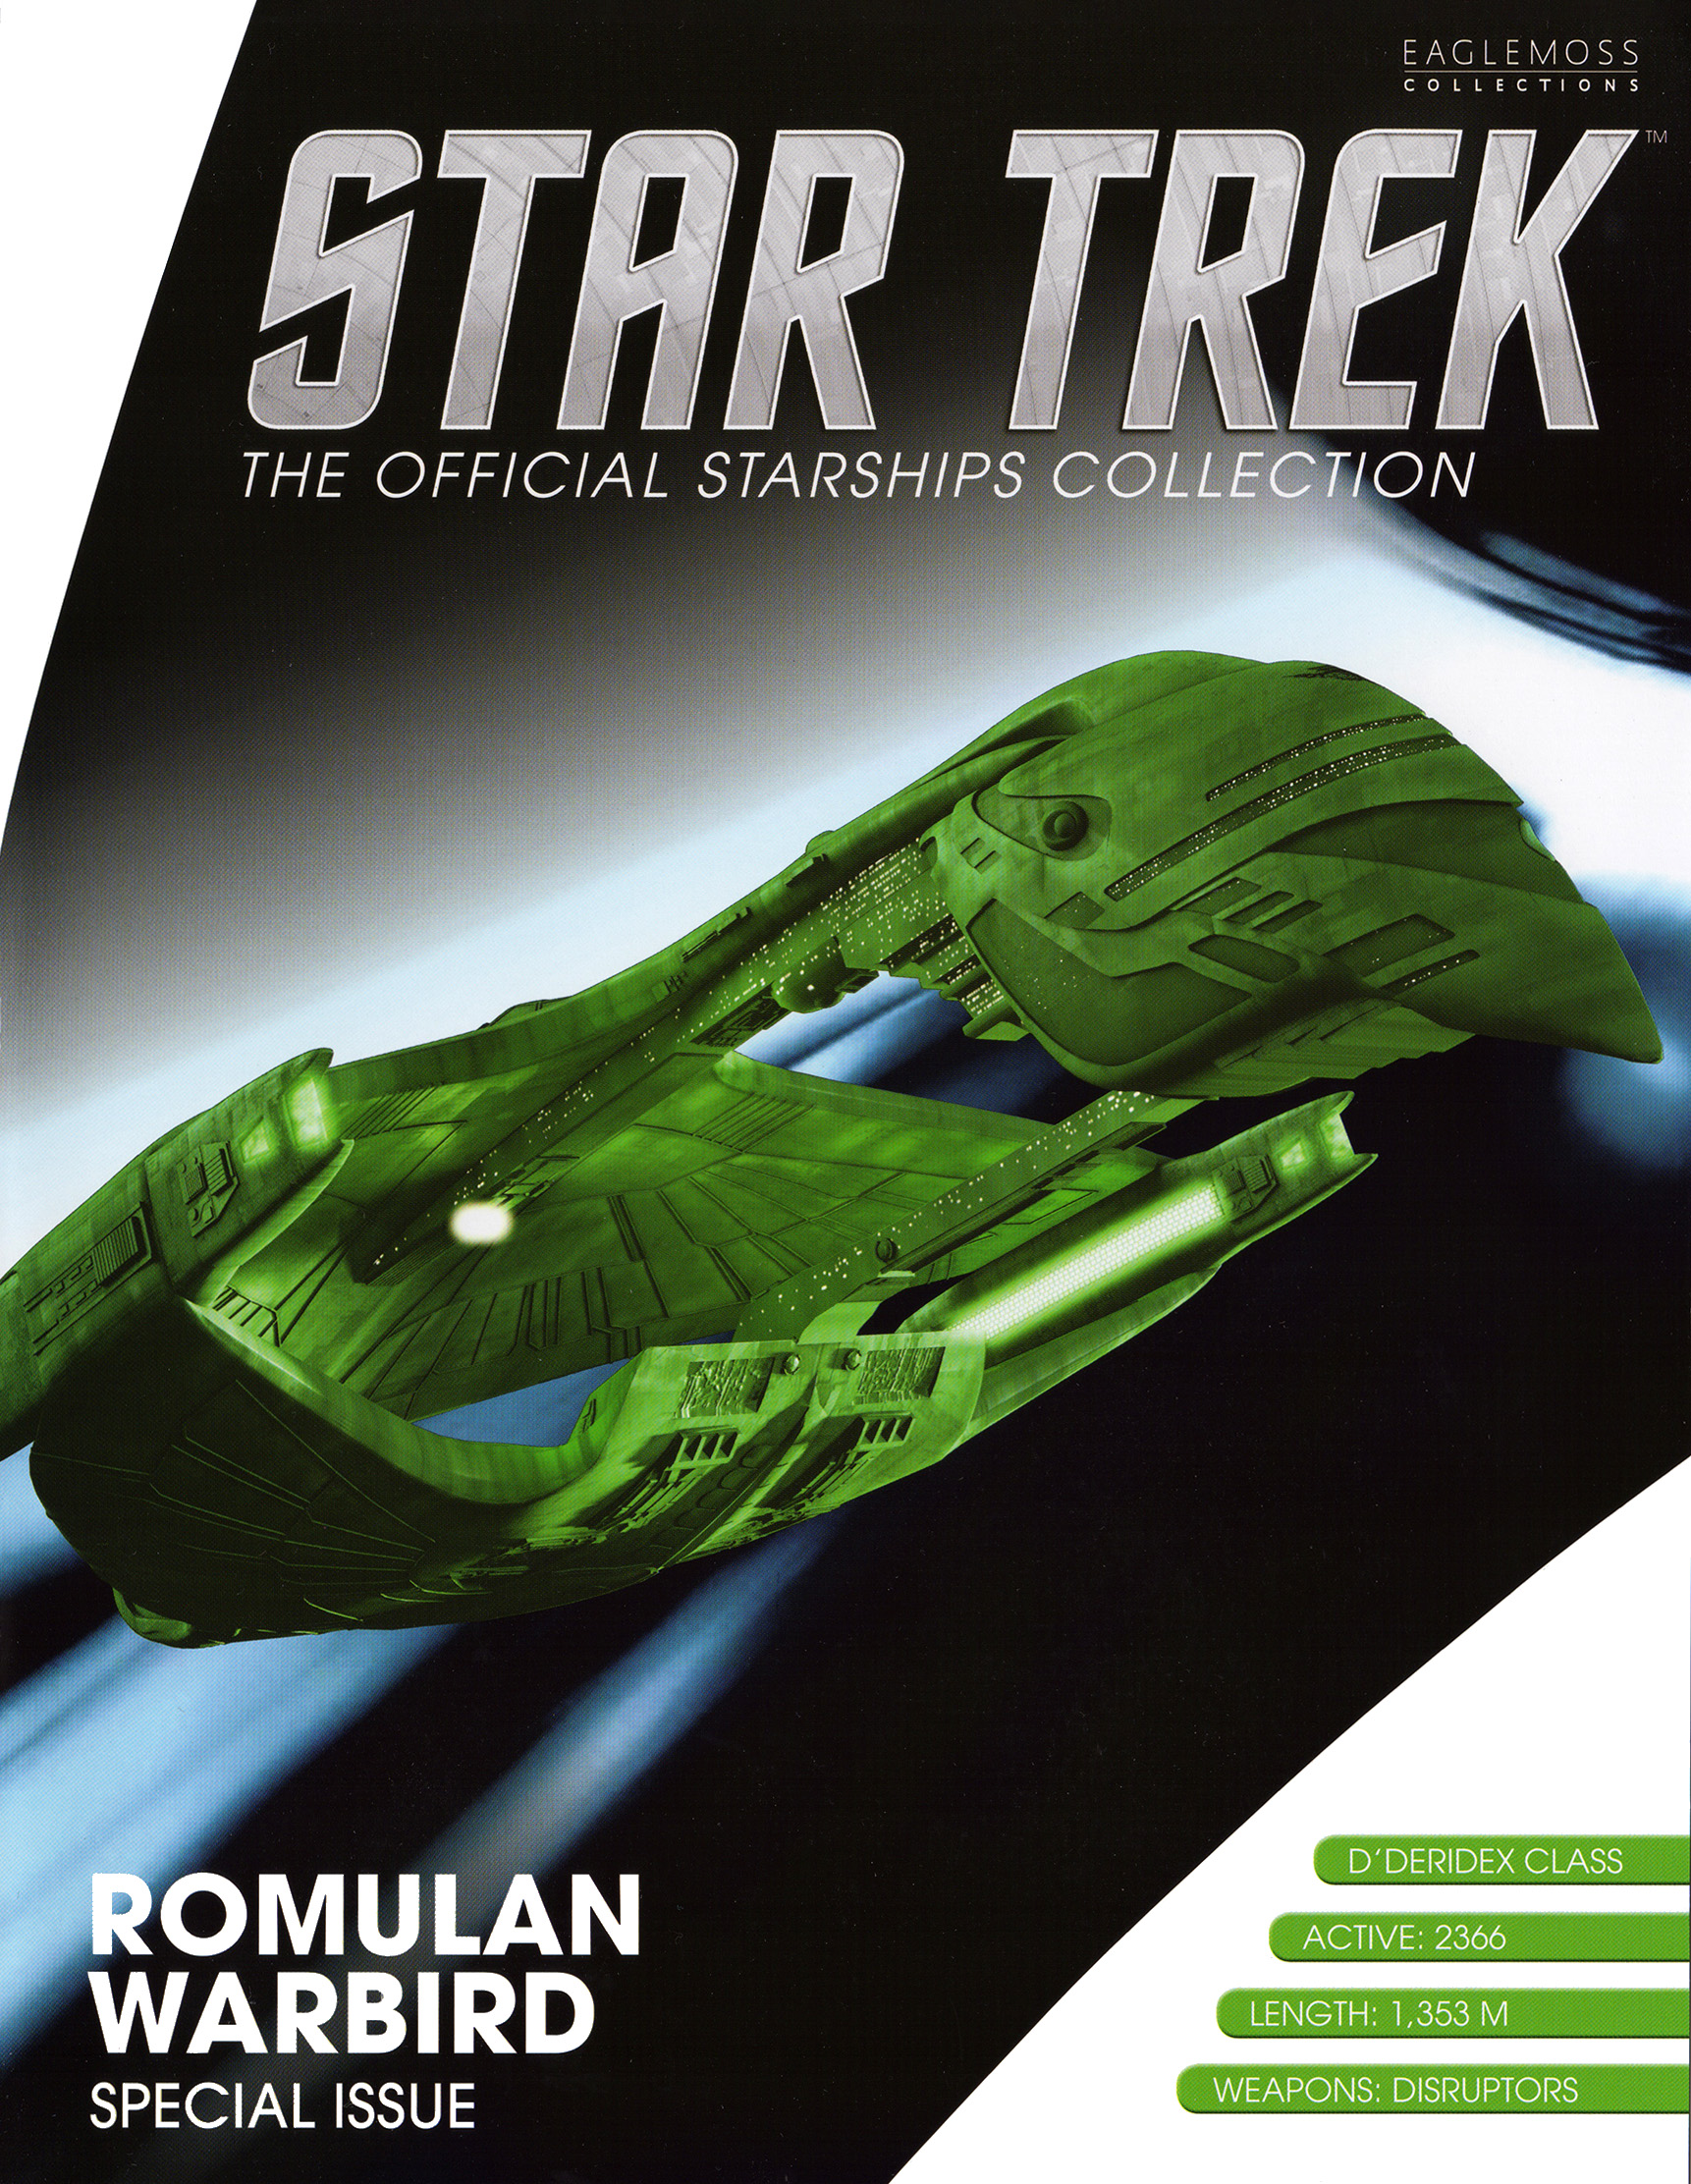 Eaglemoss Star Trek Starships XL Issue 16